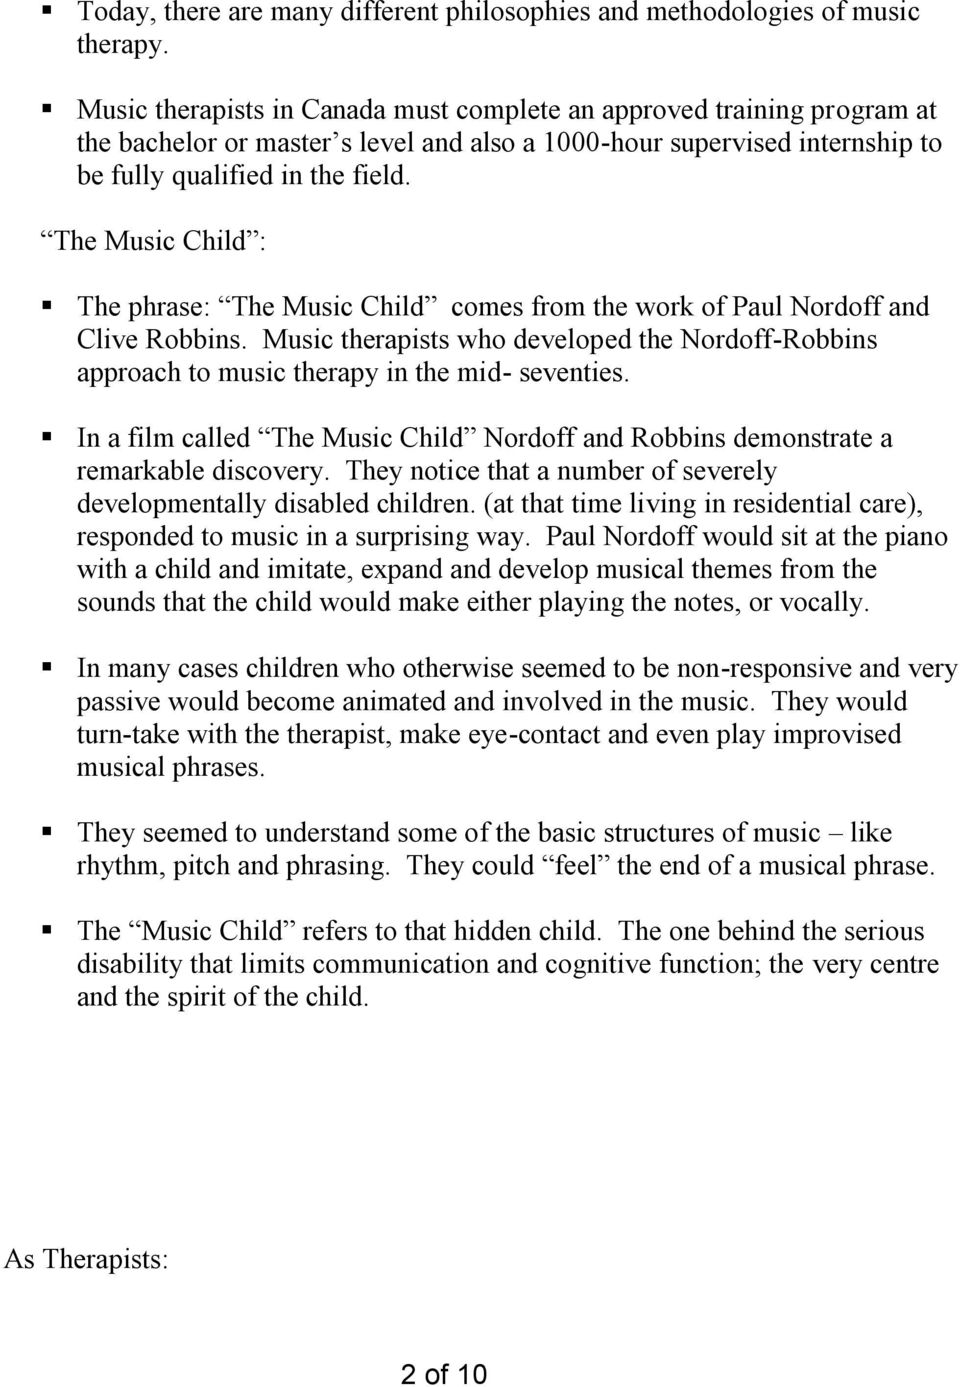 The Music Child : The phrase: The Music Child comes from the work of Paul Nordoff and Clive Robbins. Music therapists who developed the Nordoff-Robbins approach to music therapy in the mid- seventies.